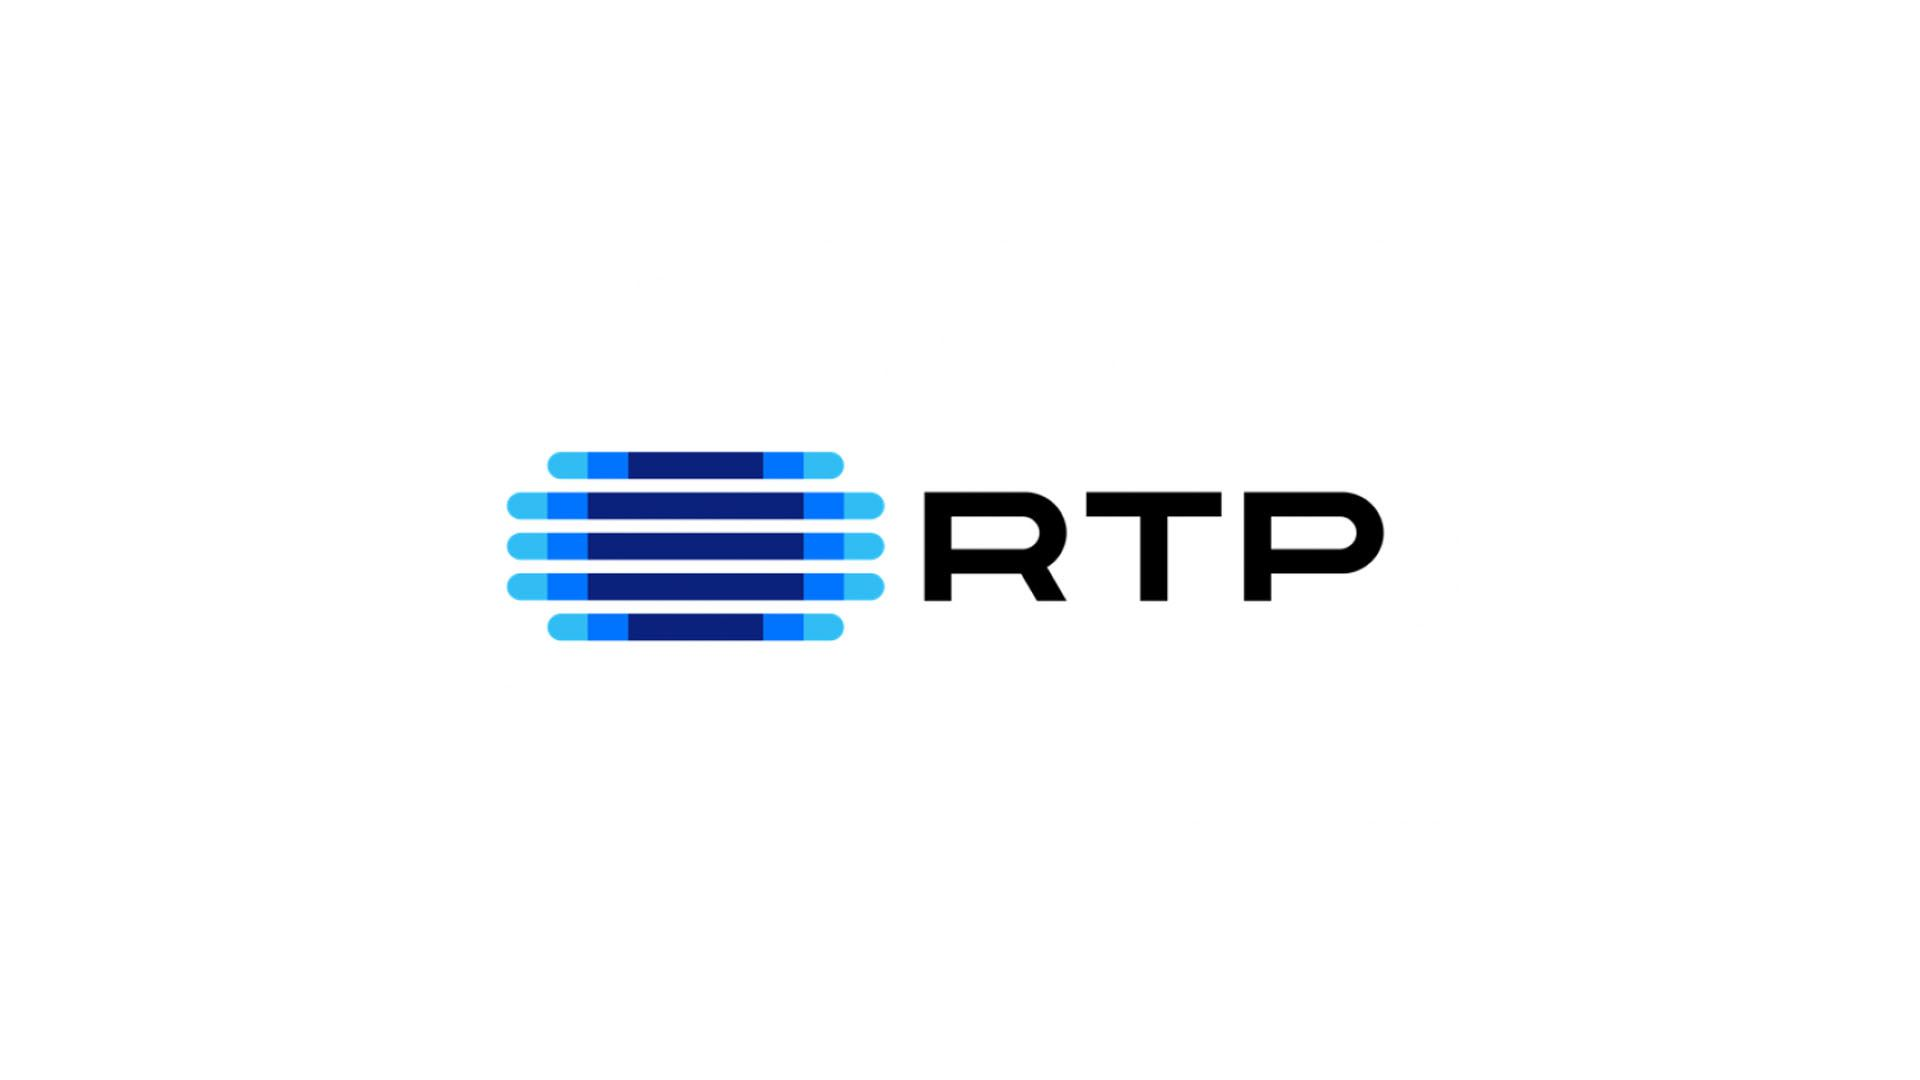 RTP Masterclass: The Future of Media and Entertainment